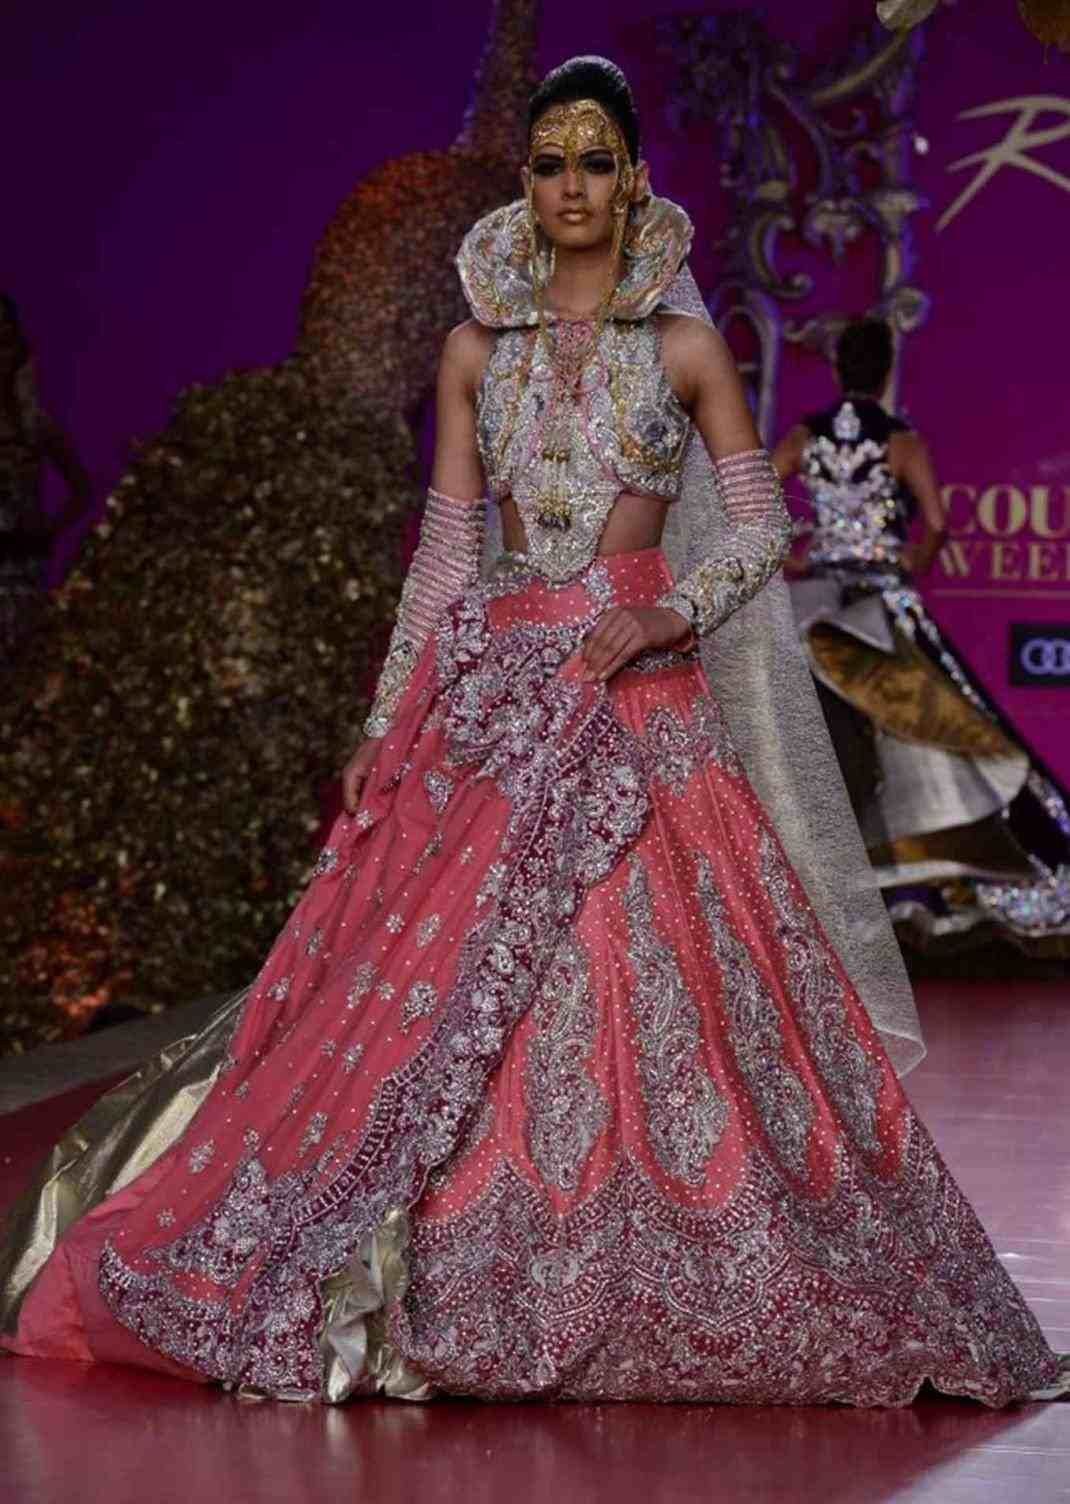 Suggested Sites Hint Wedbridal Site Clean Commerce Immediately This Instant Used Online Online Store Very Cheap Quality Online Sales Delhi Couture Week Indian Wedding Fashion Indian Fashion Designers